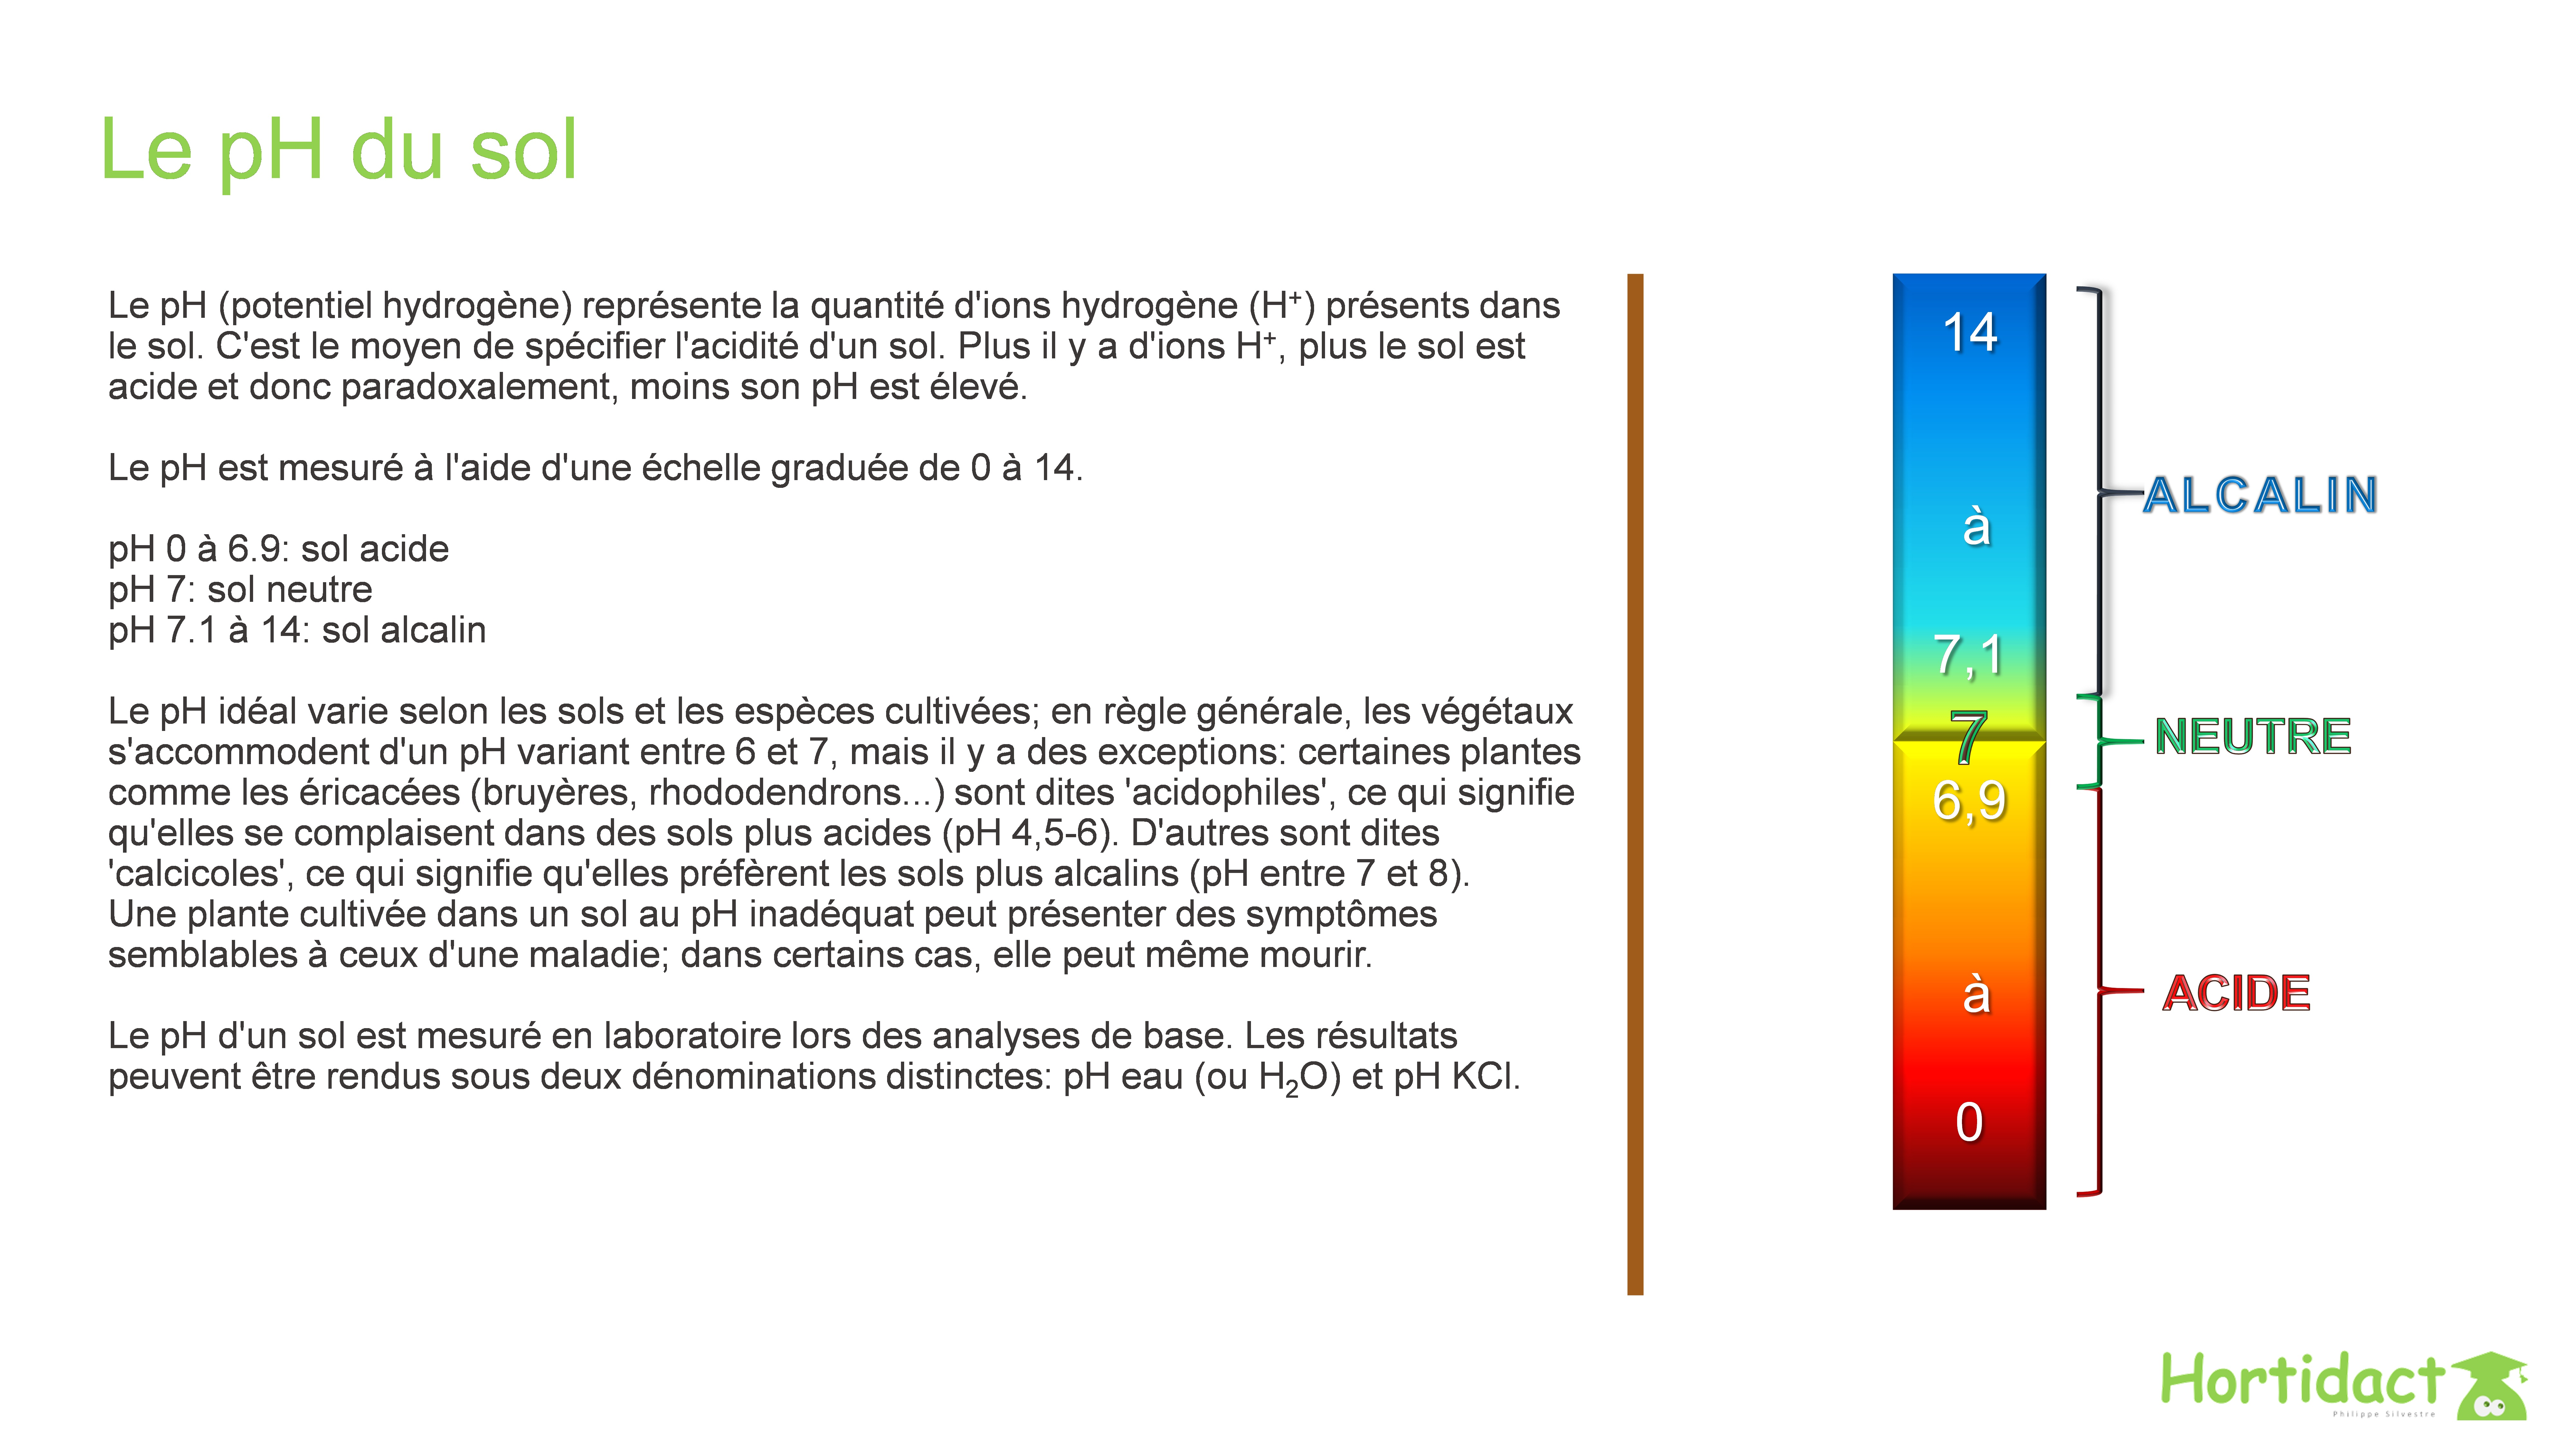 Le sol : pH et corrections - Hortidact